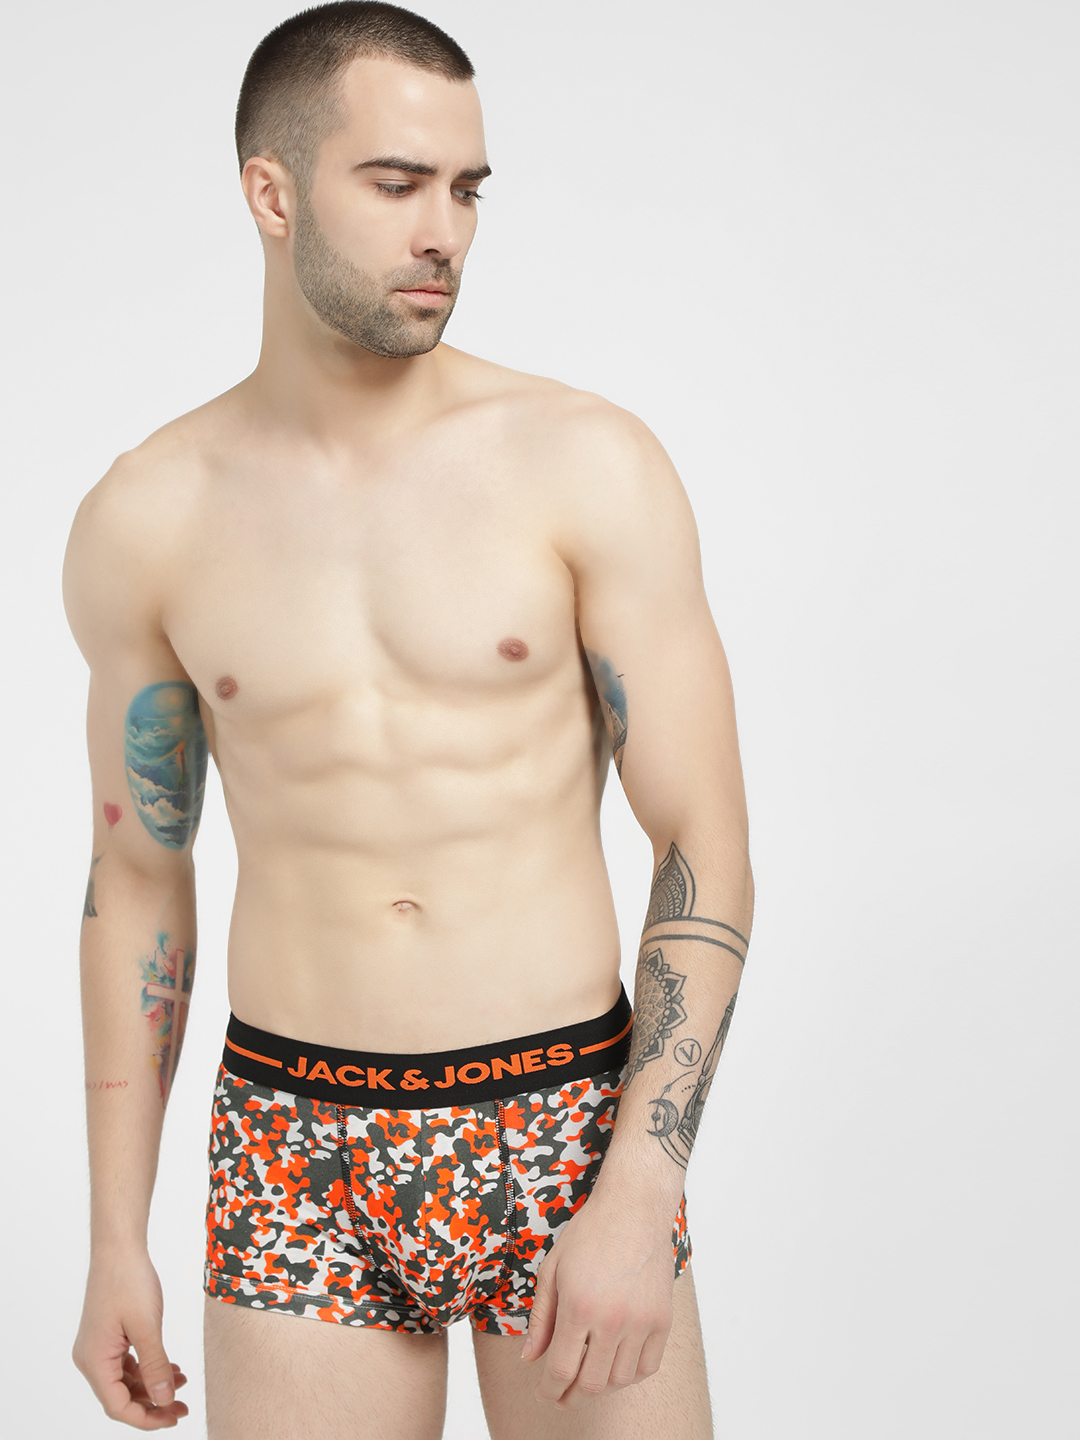 Jack & Jones Multi Honey Camo Print Trunks 1